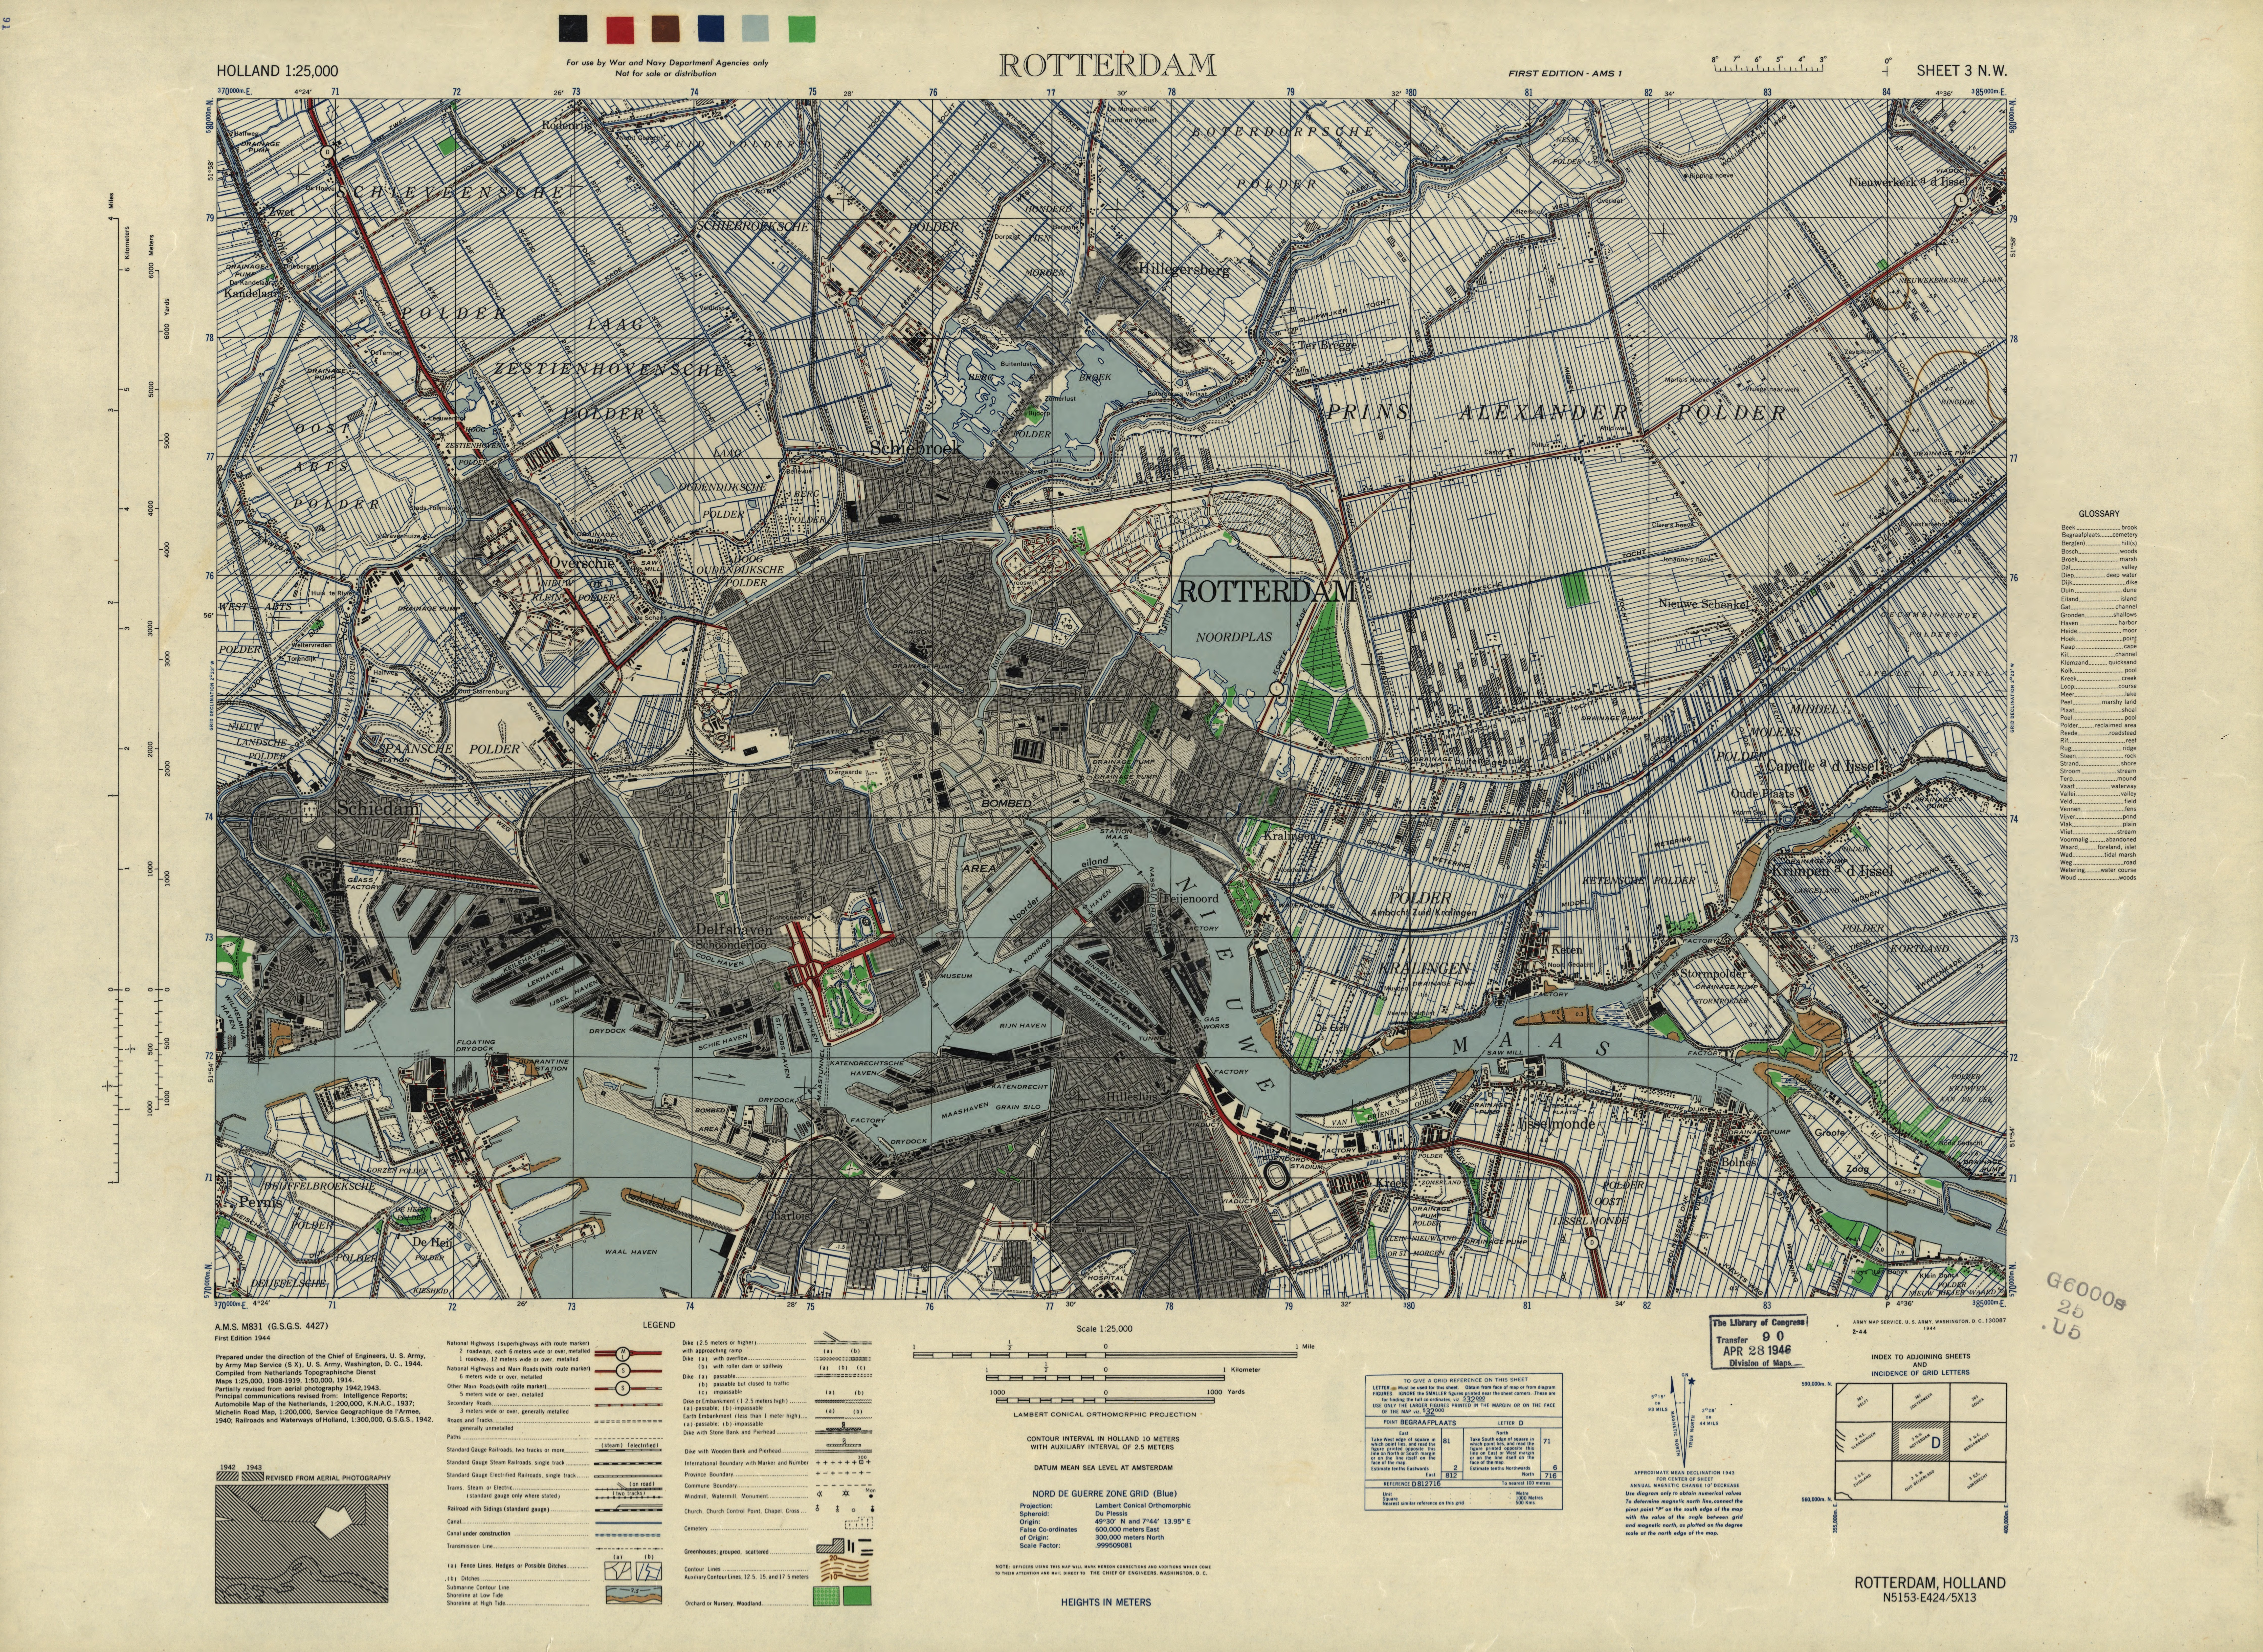 US Army Map Of The Bombed City Of Rotterdam In The - Us army travel map